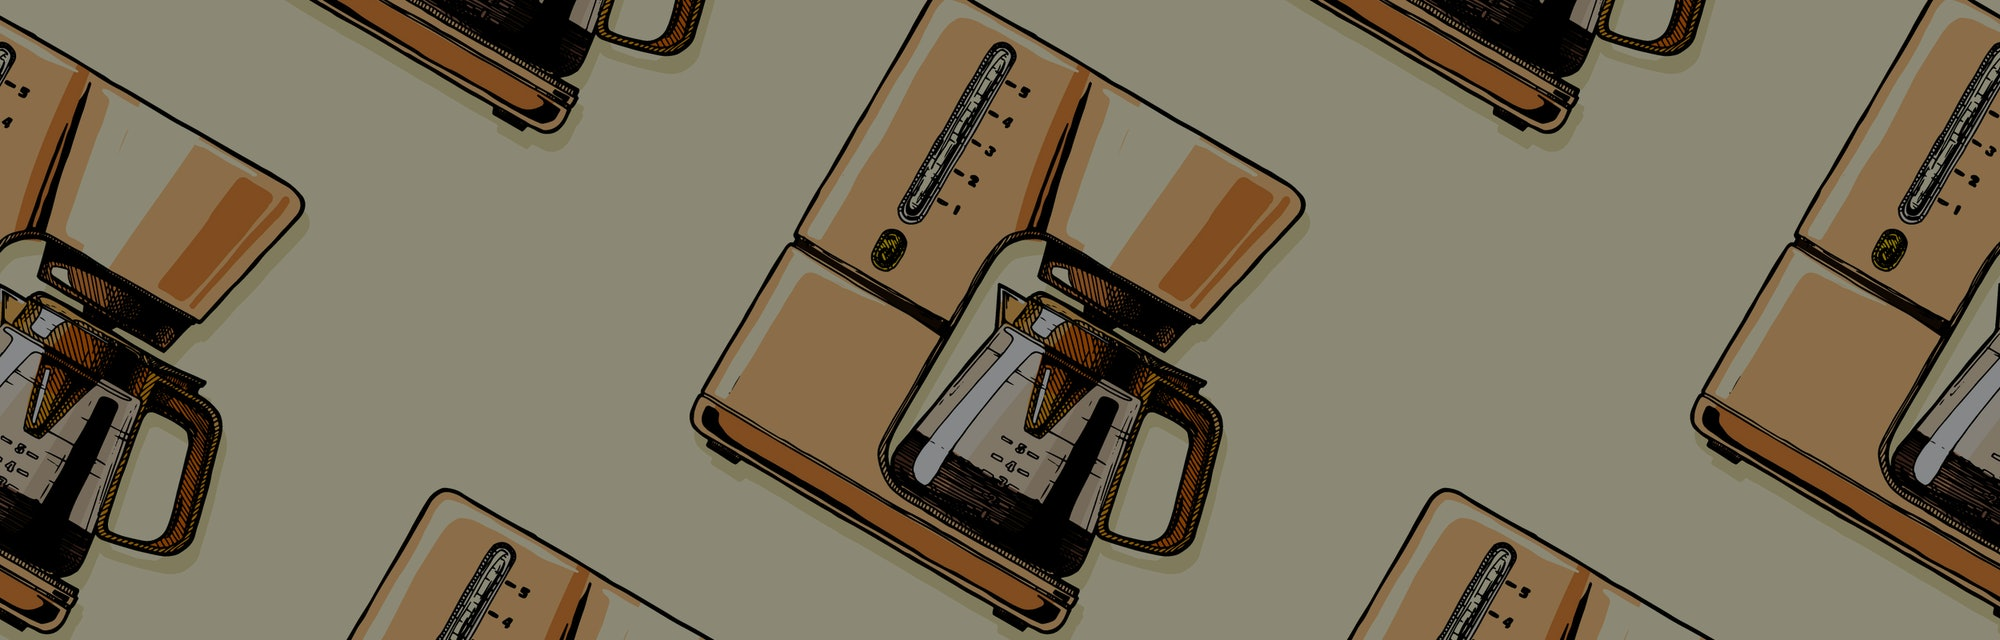 Seamless pattern with coffee machines. Single-cup maker, drip coffeemaker, percolator and espresso m...